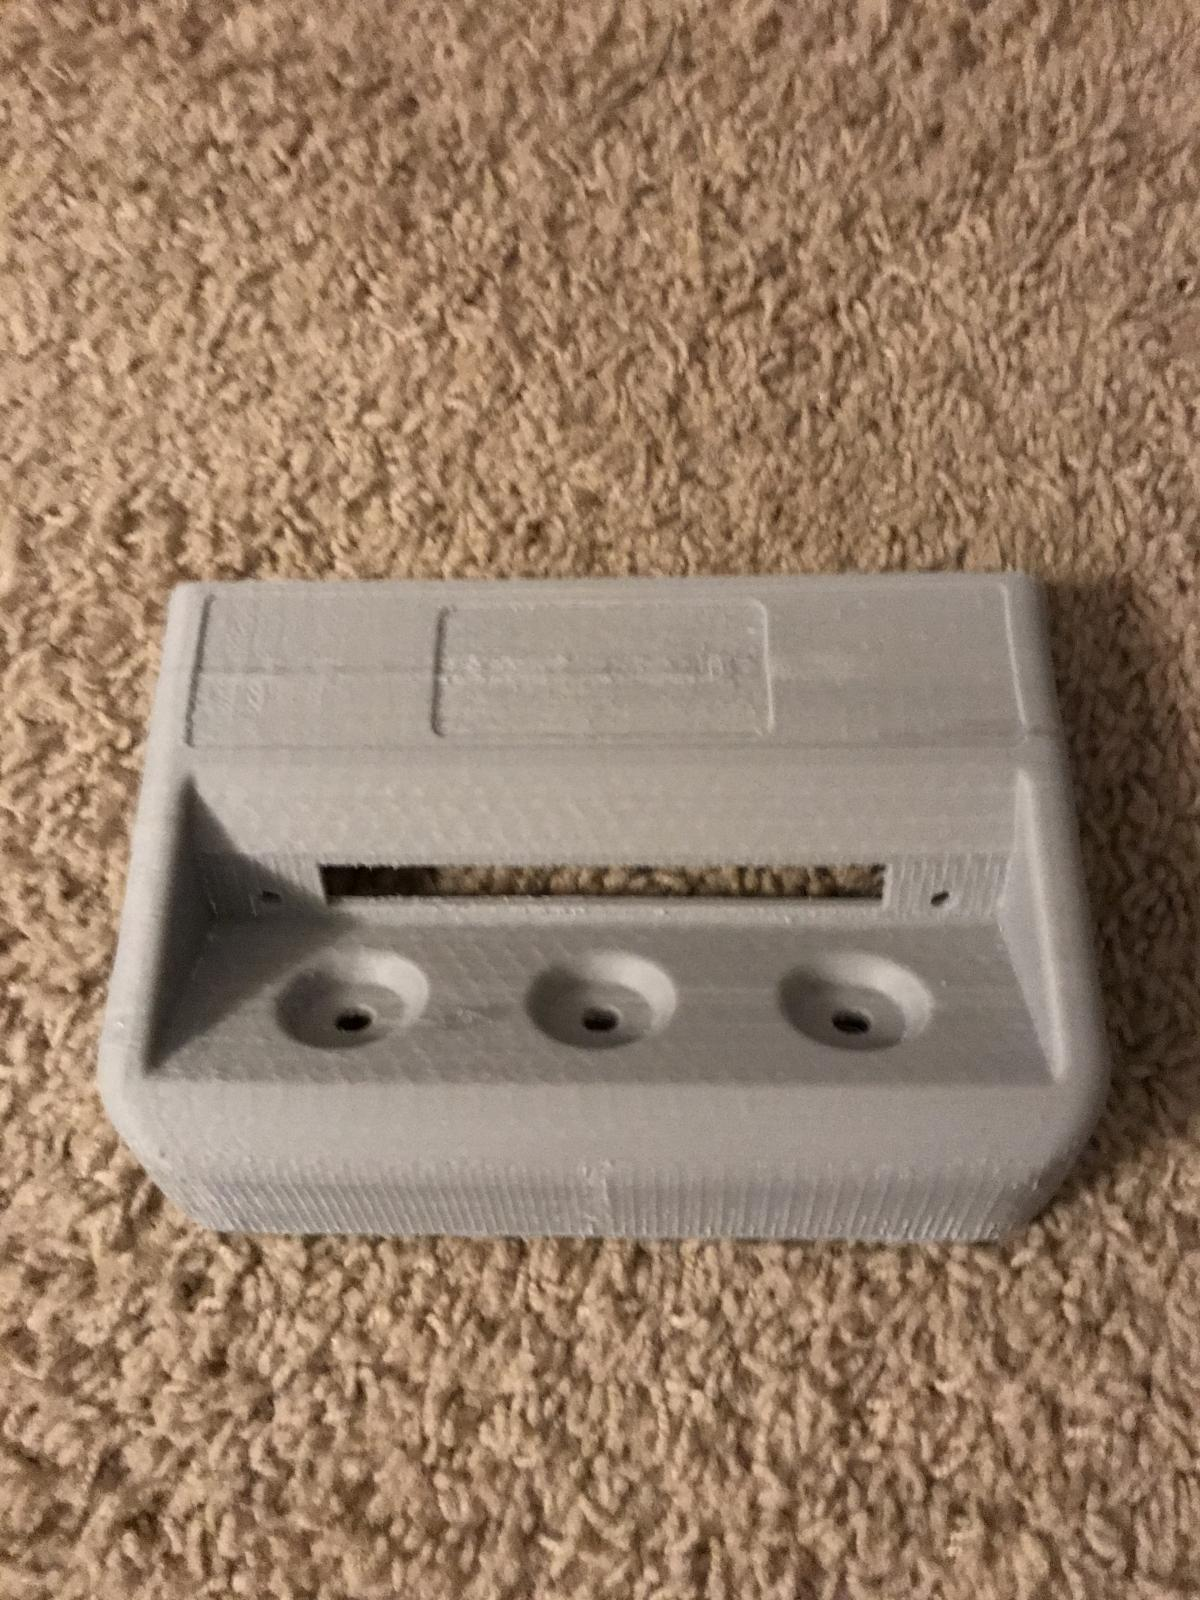 3D printed syncro diff lock panel